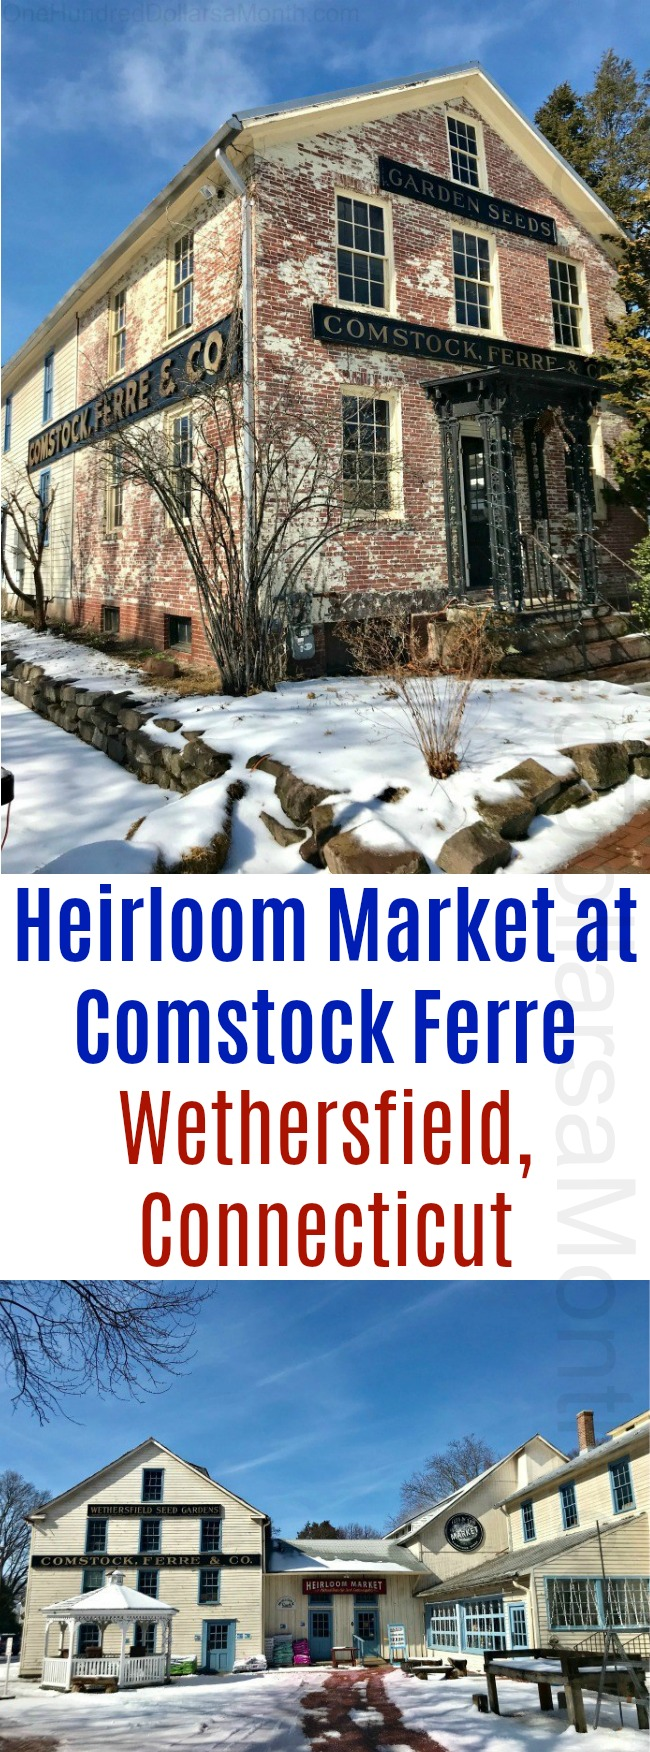 Heirloom Market at Comstock Ferre in Wethersfield, Connecticut